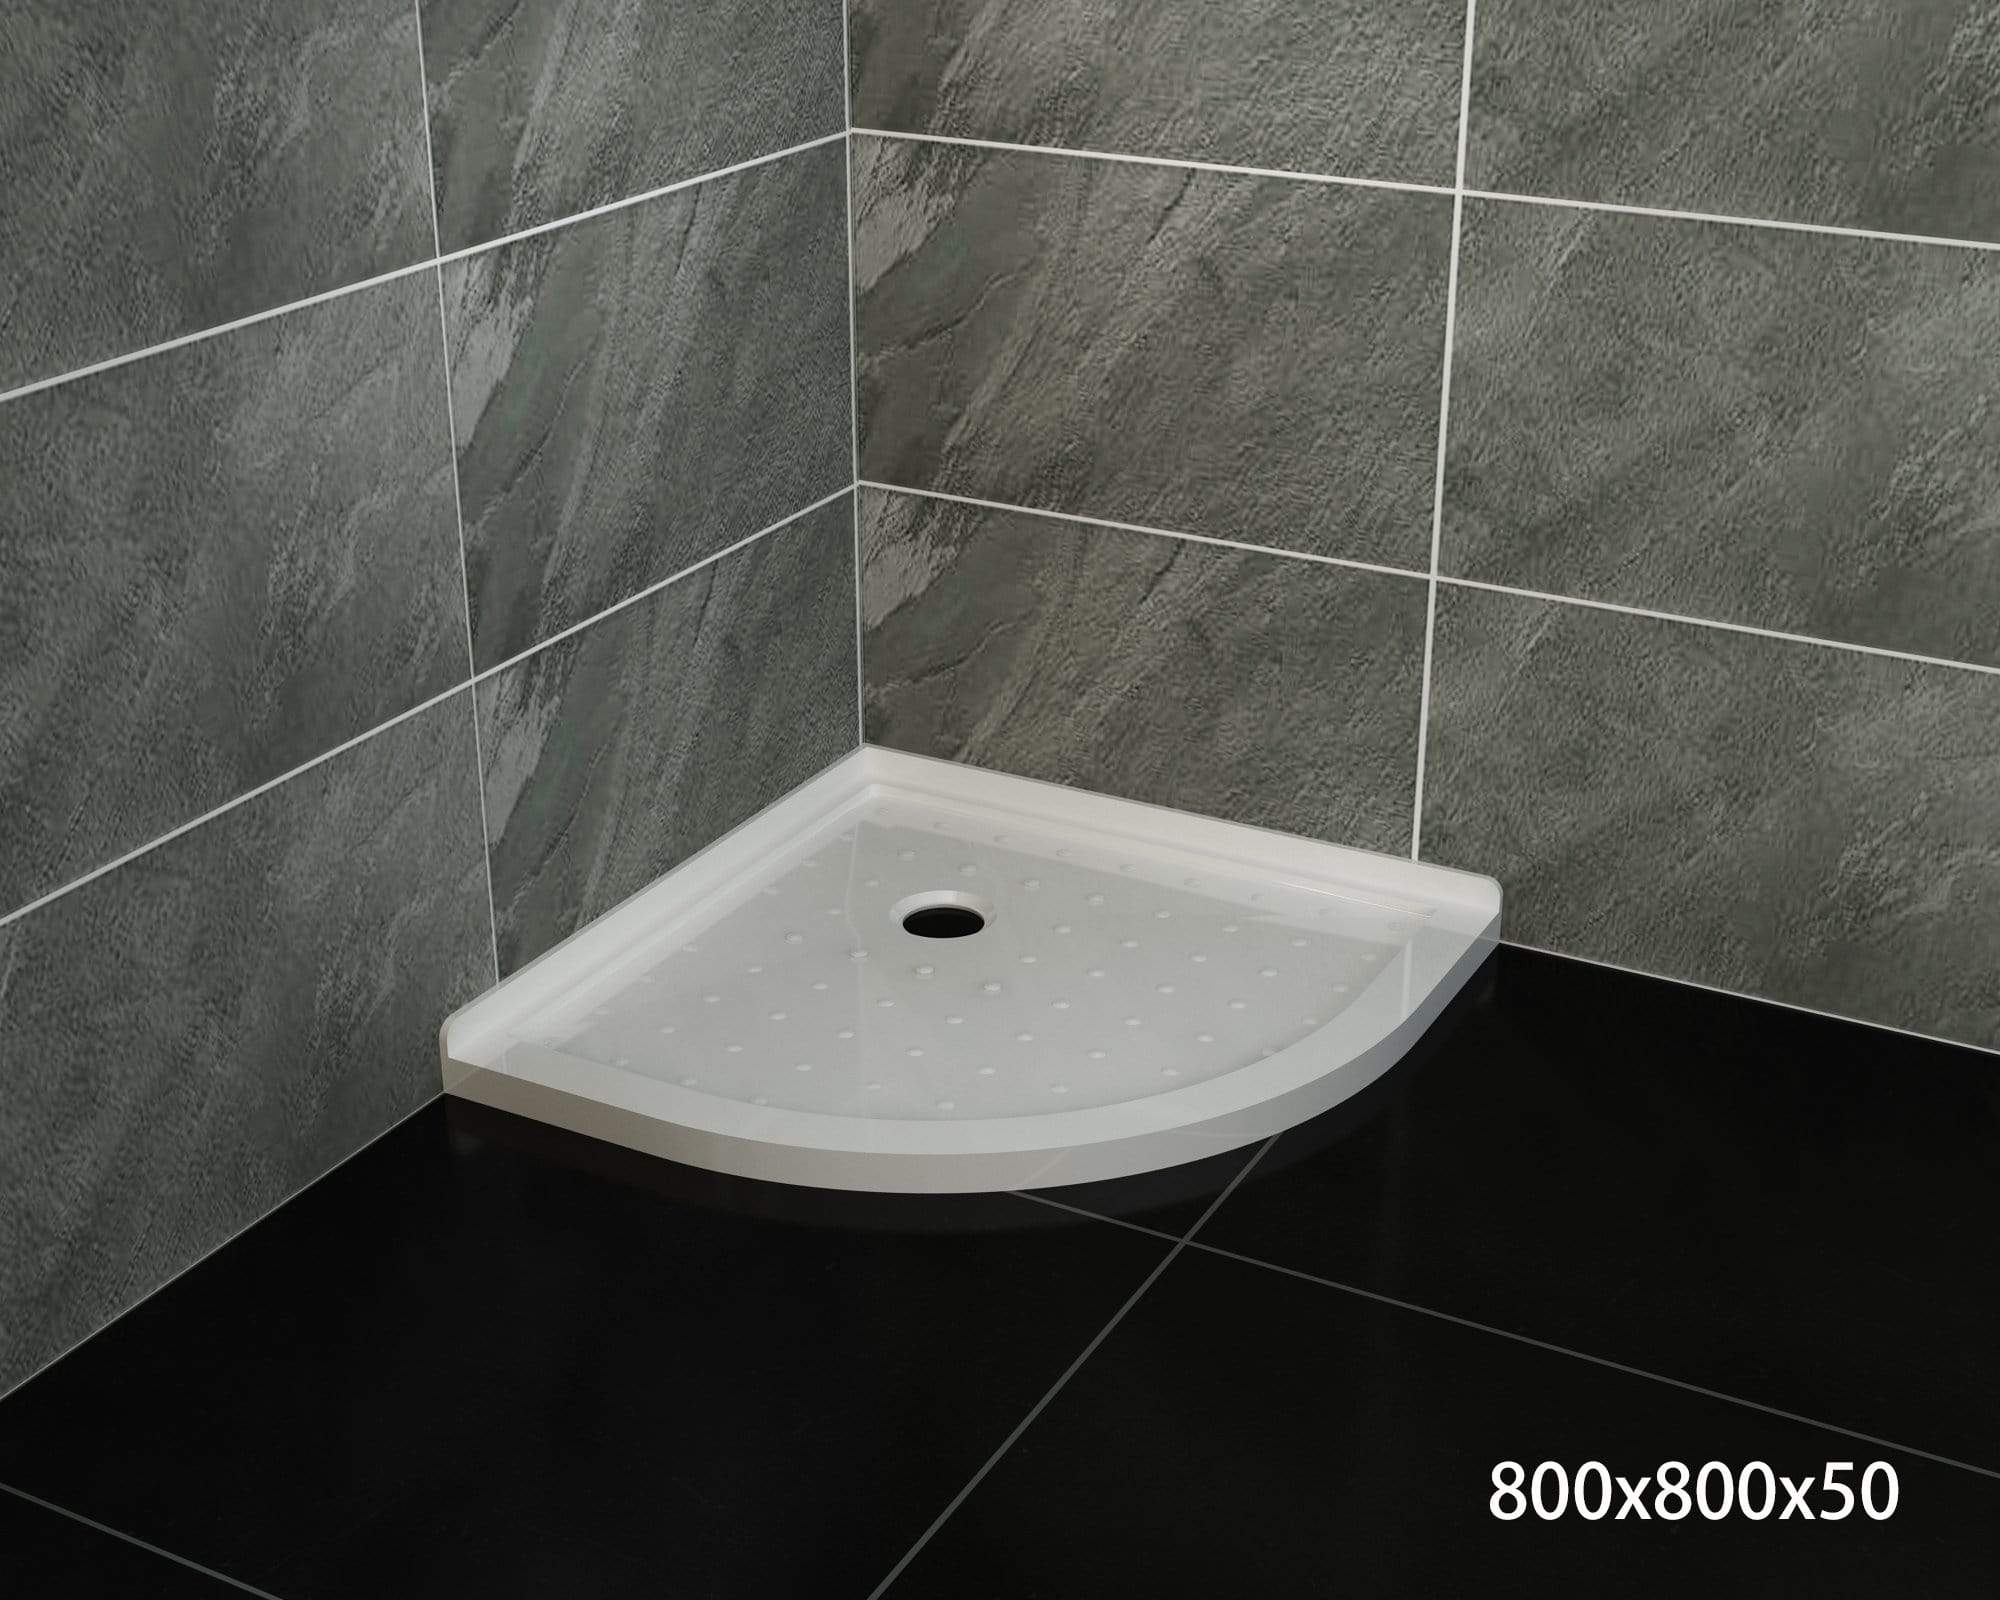 ELEGANT SHOWERS Extra Strong Acrylic Fiberglass Curved Shower Base-800x800mm - Elegantshowers